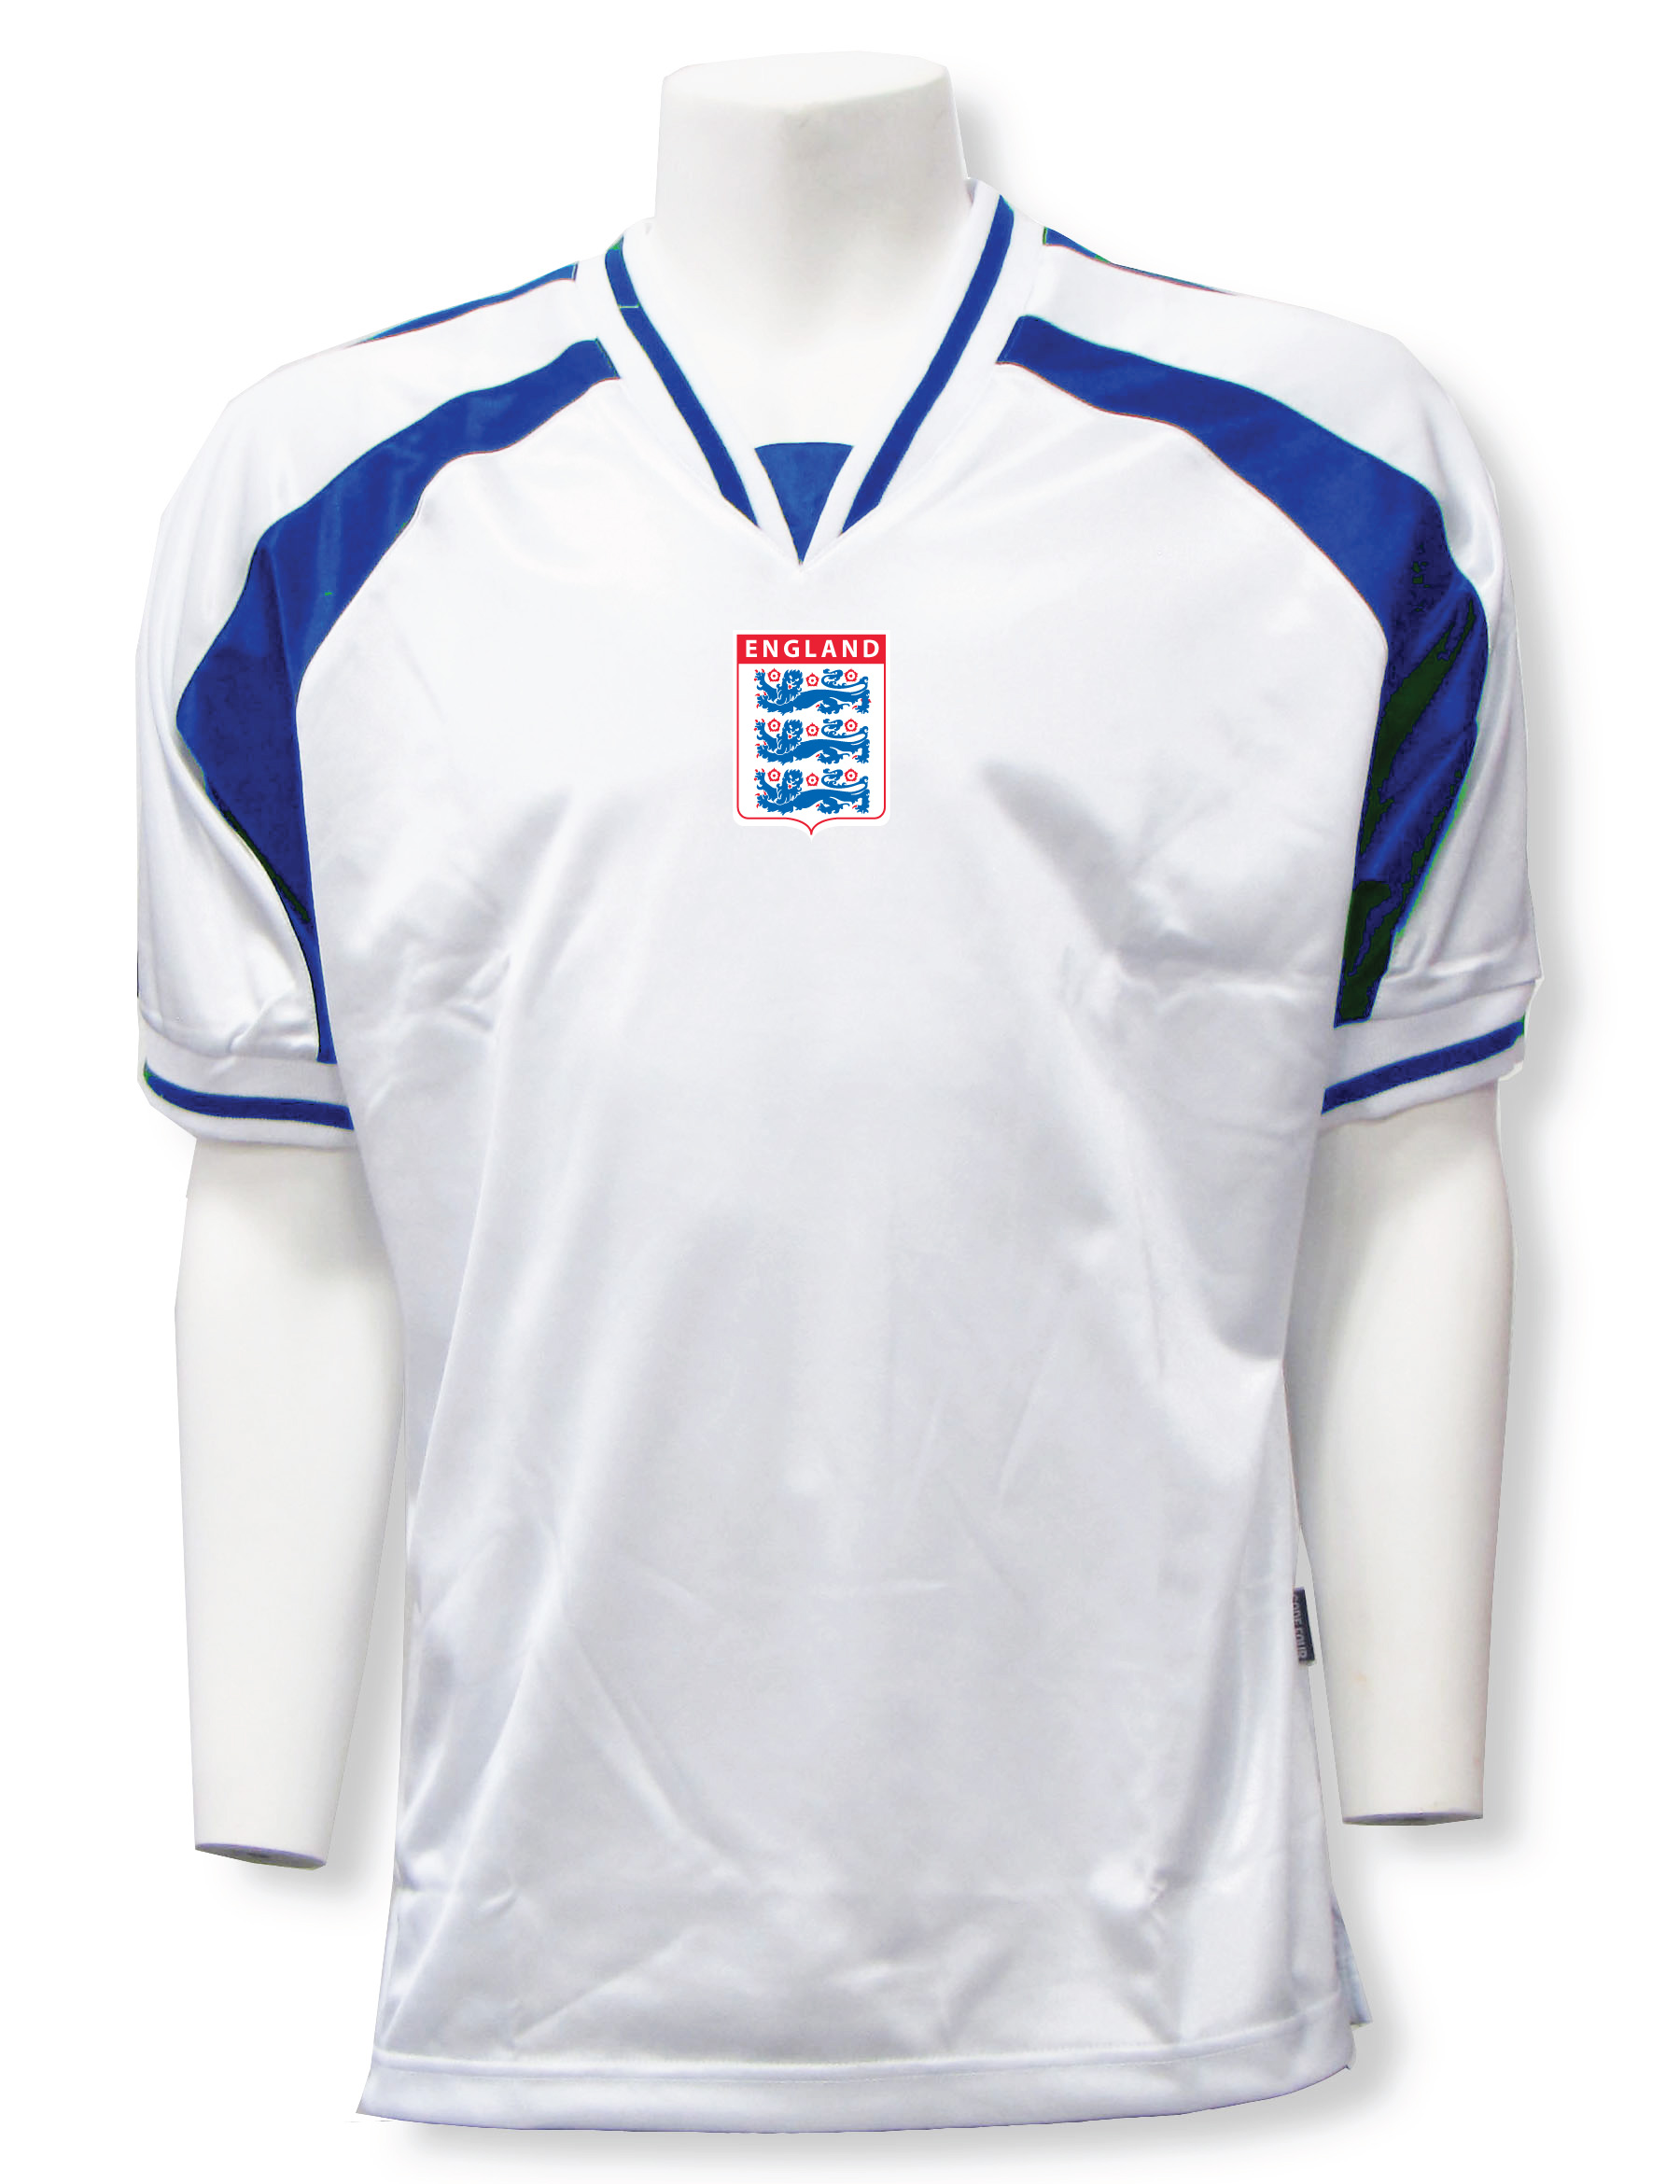 England soccer jersey in white/royal Spitfire